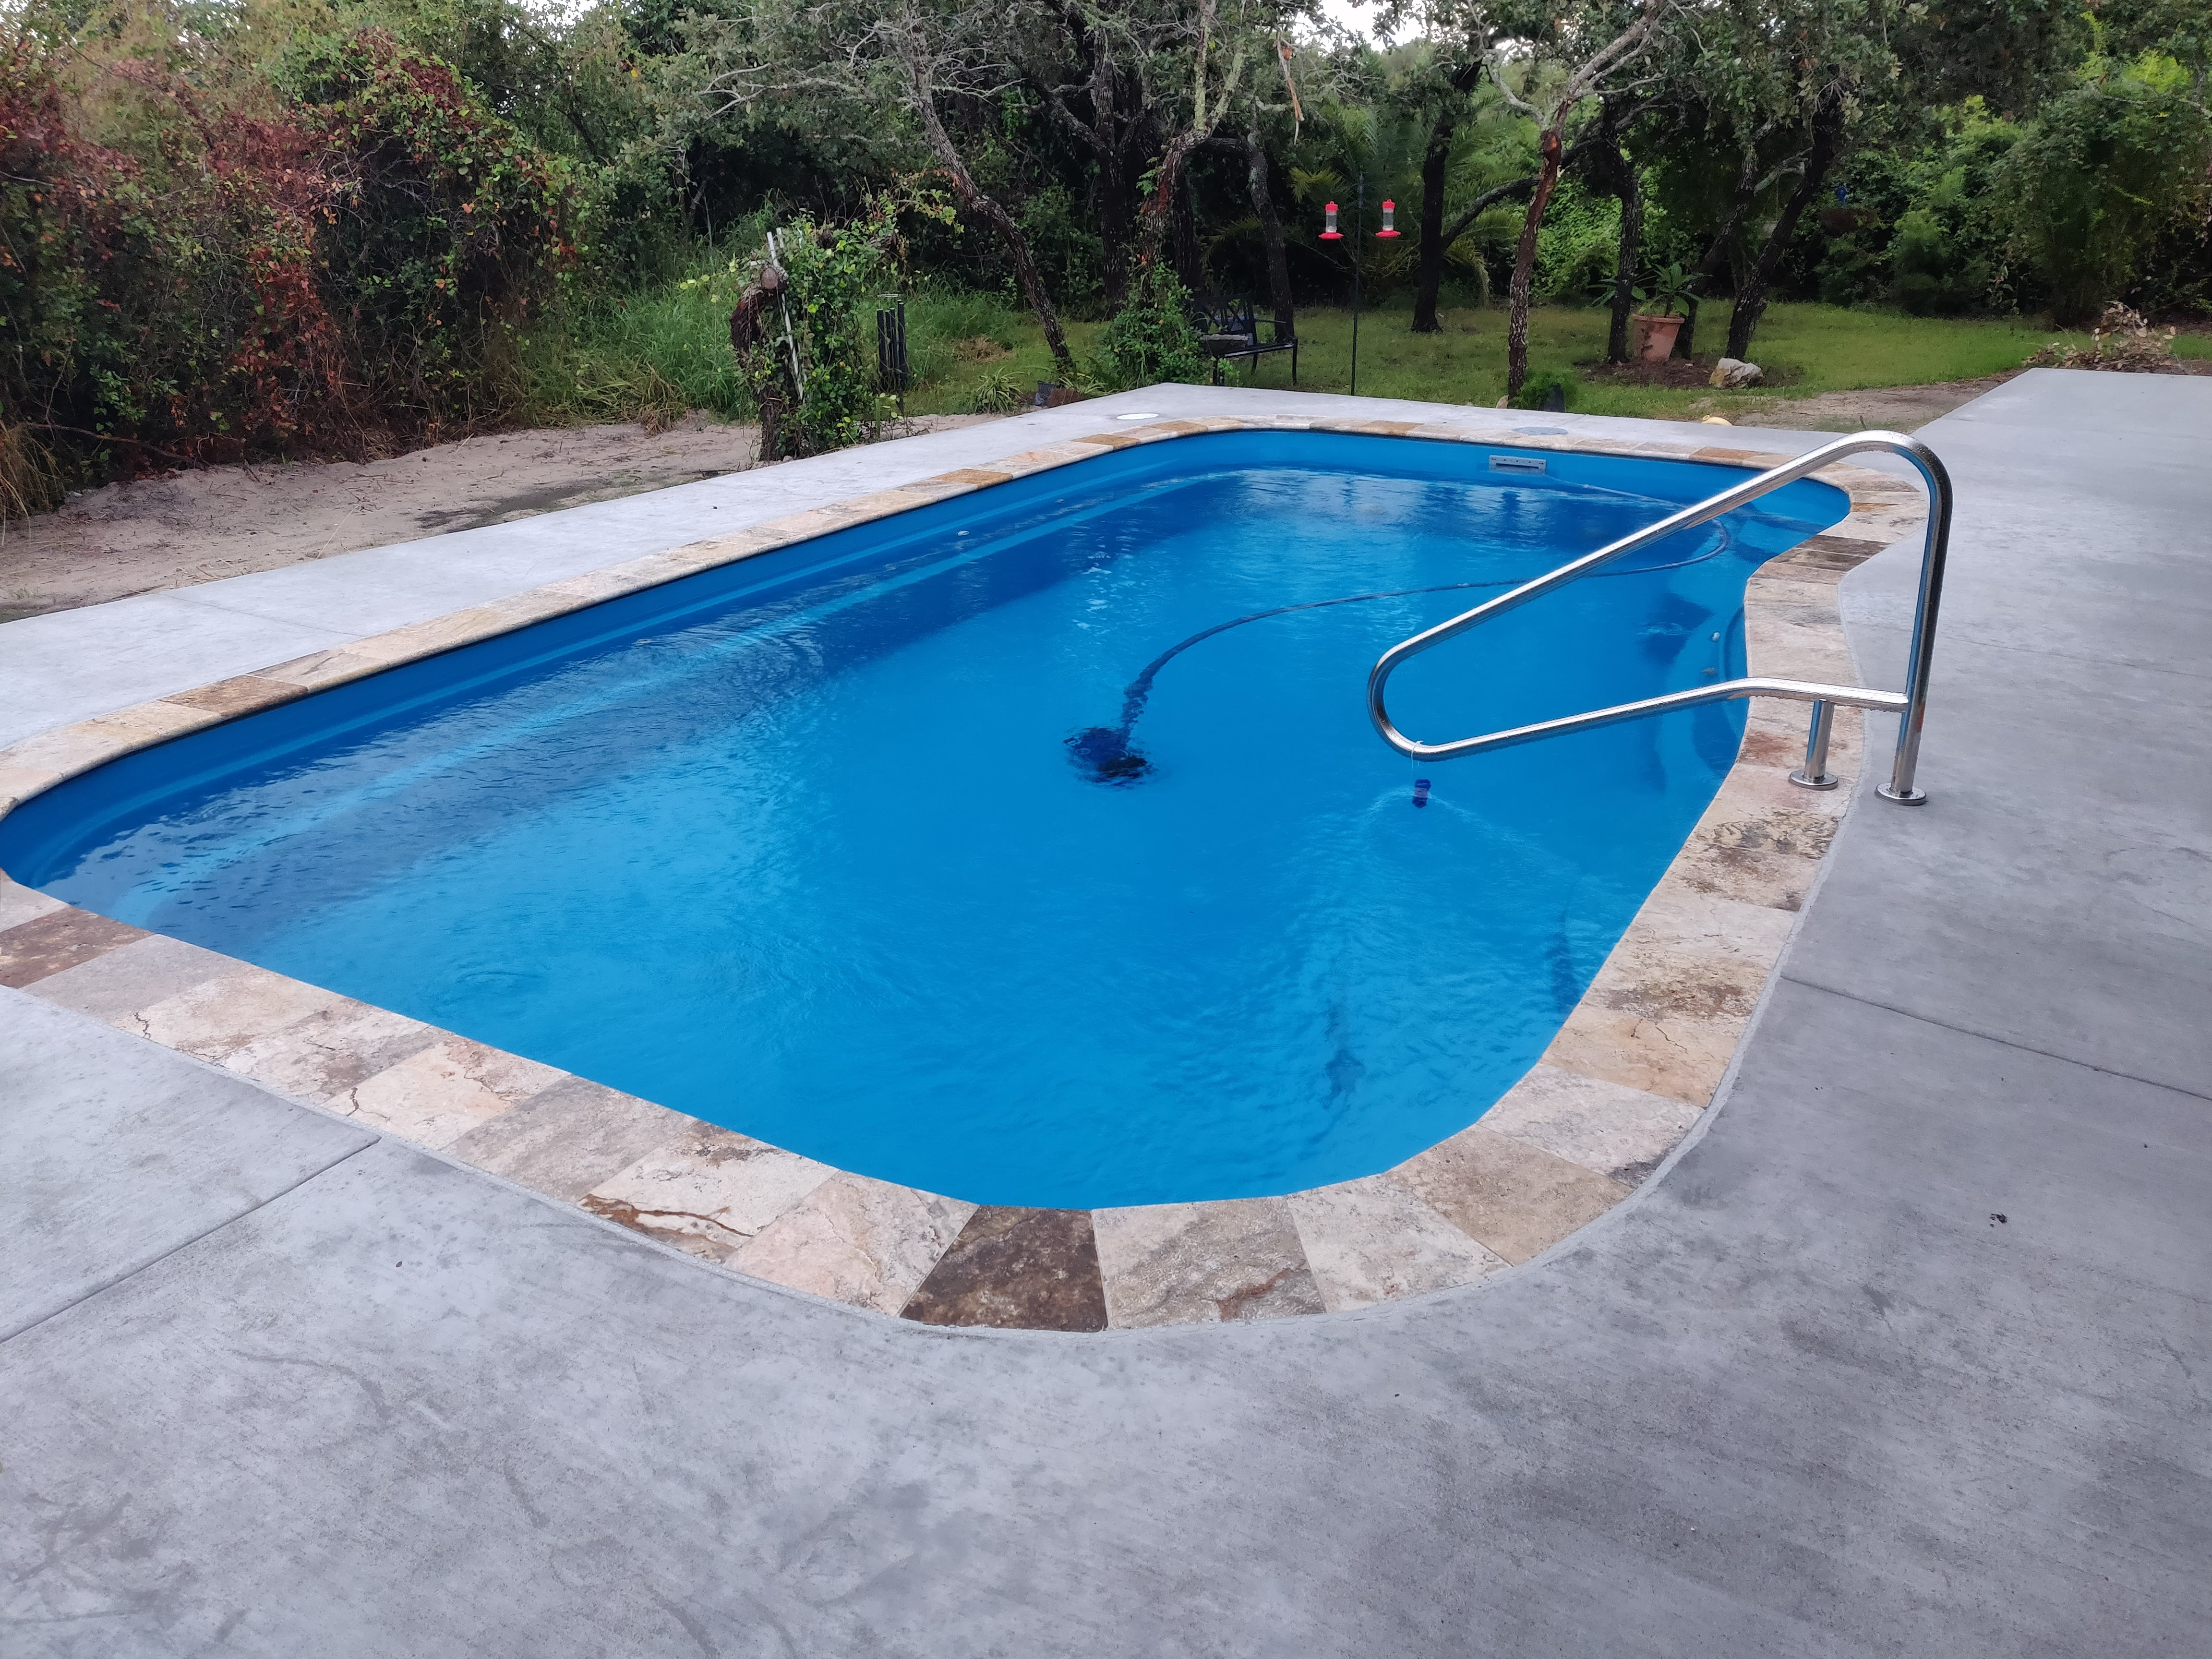 Fiberglass residential pool installed by Pools by DC Design.